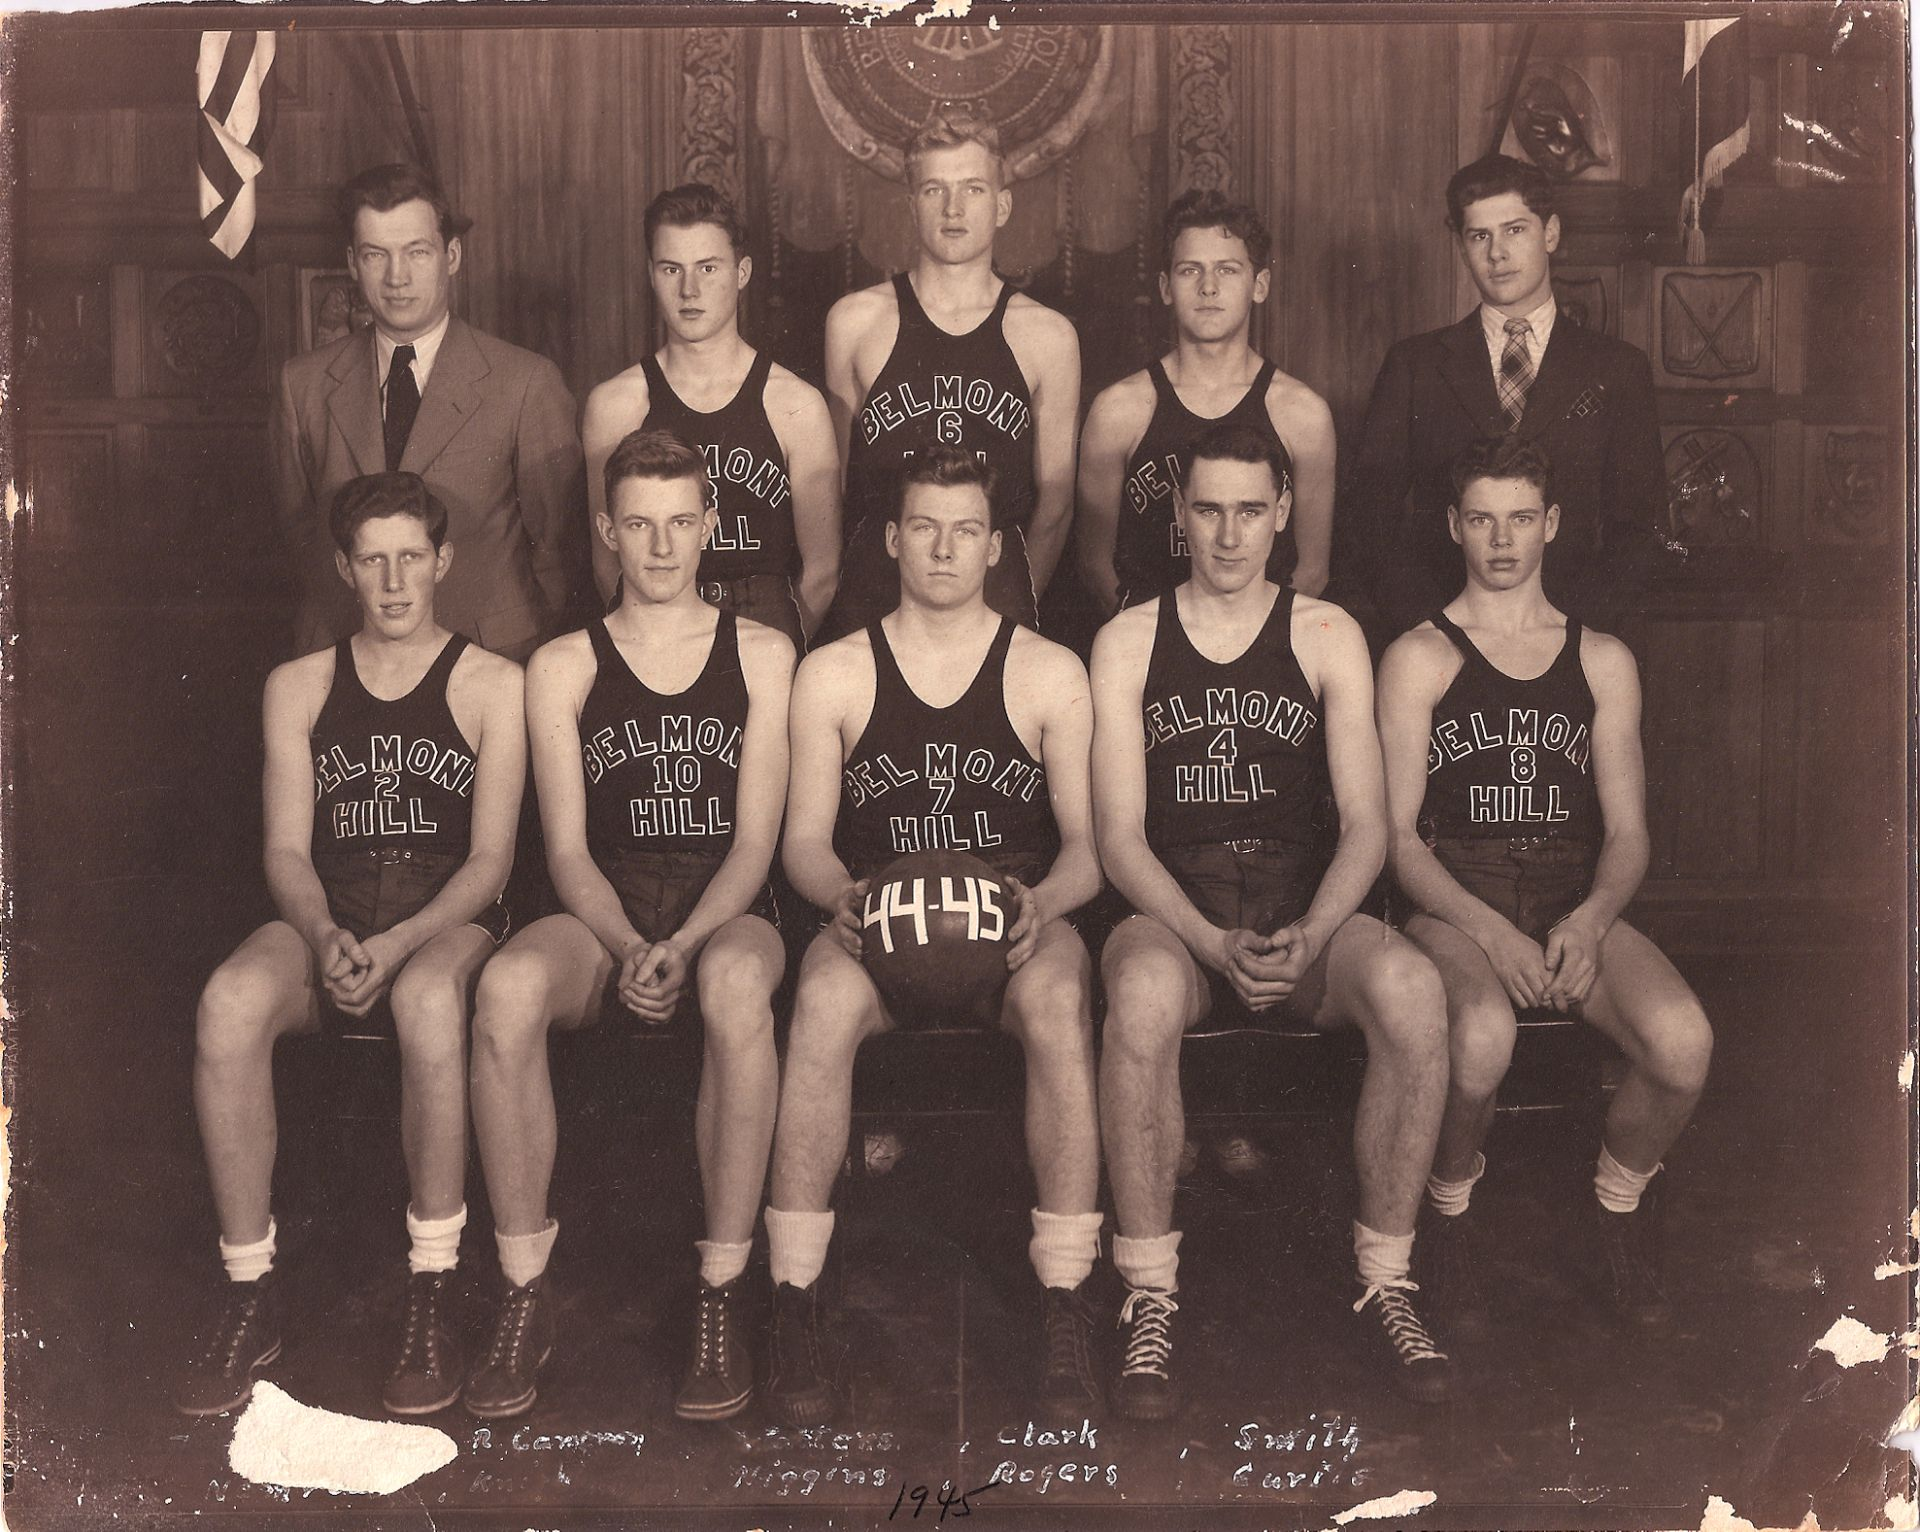 Second Row: Mr. Croke, Robt. Cameron, Walter, Clarke, Smith Front Row: Nemrow, Knight, B. Higgins, Rogers, Curtis